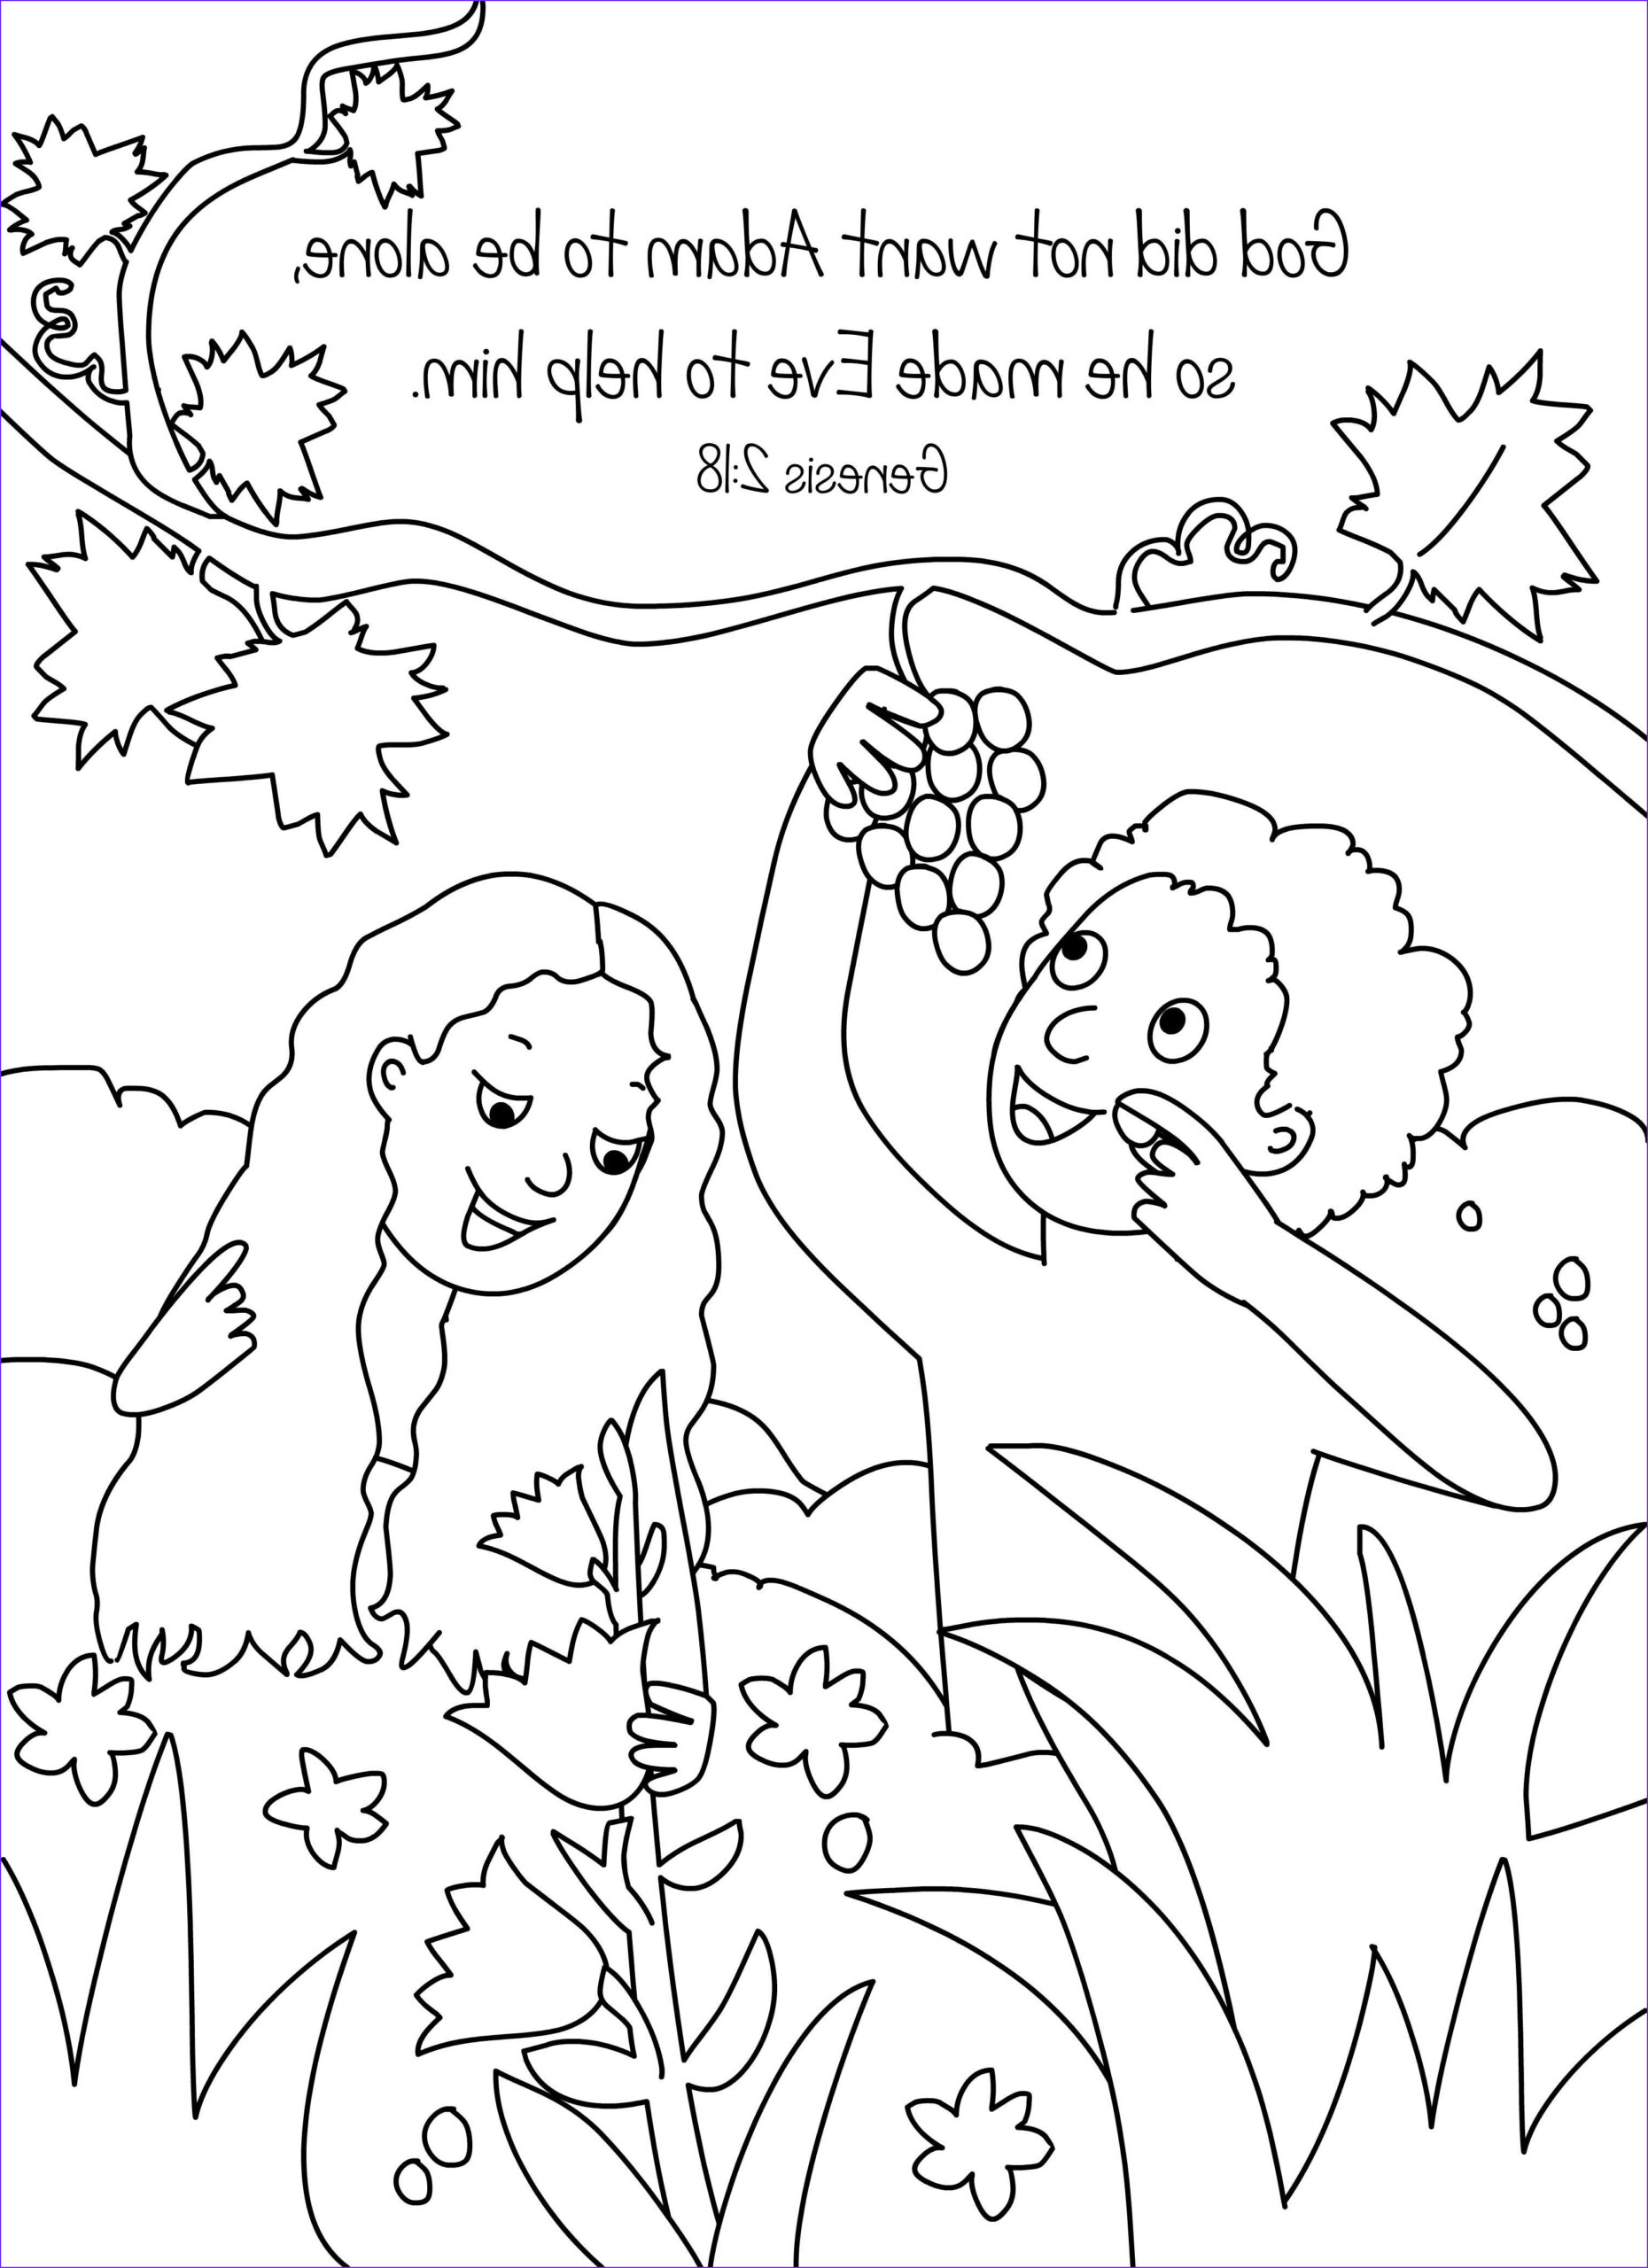 Adam and Eve Coloring Sheet Beautiful Gallery Bible Key Point Coloring Page Adam and Eve